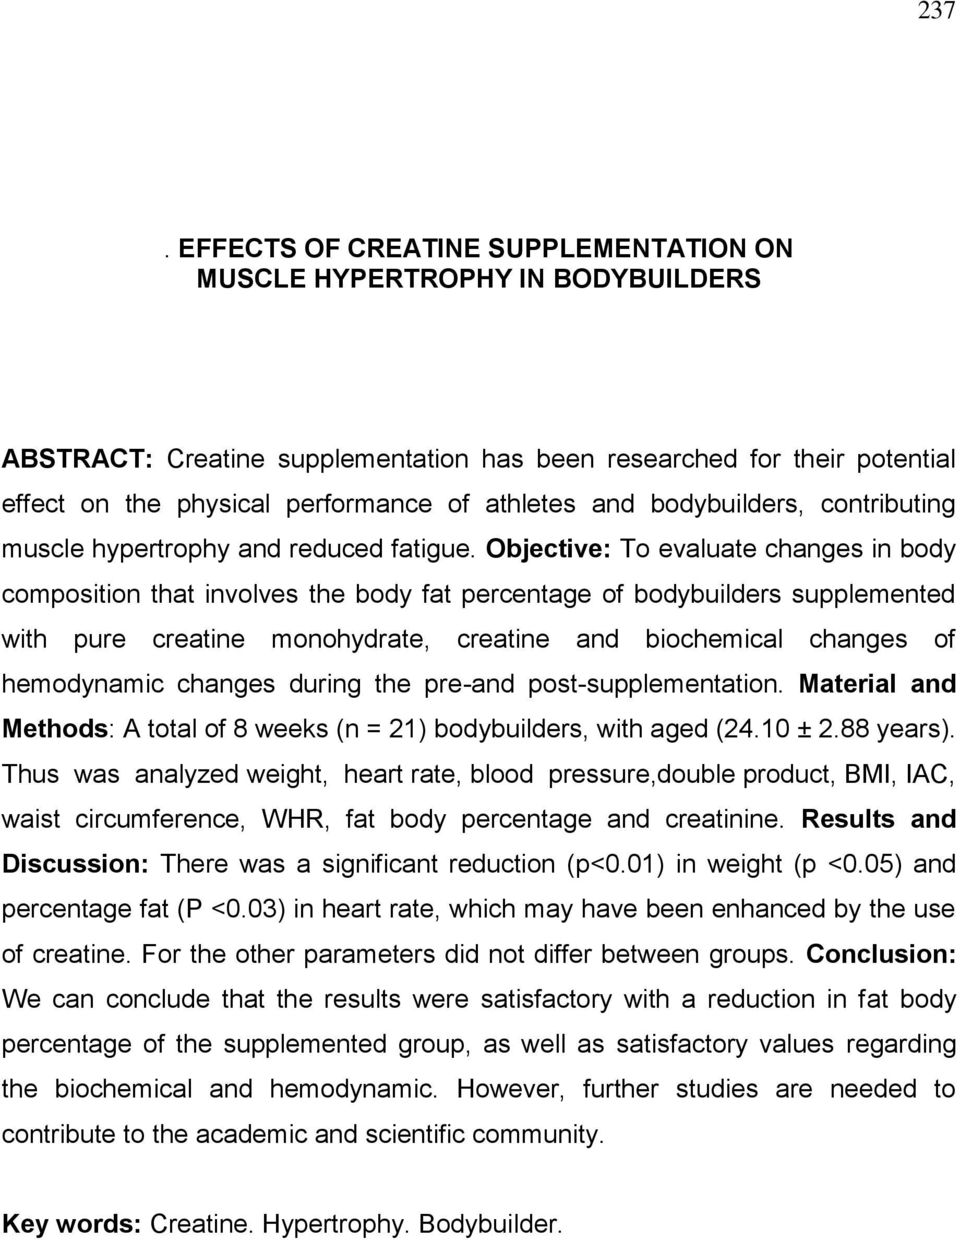 Objective: To evaluate changes in body composition that involves the body fat percentage of bodybuilders supplemented with pure creatine monohydrate, creatine and biochemical changes of hemodynamic